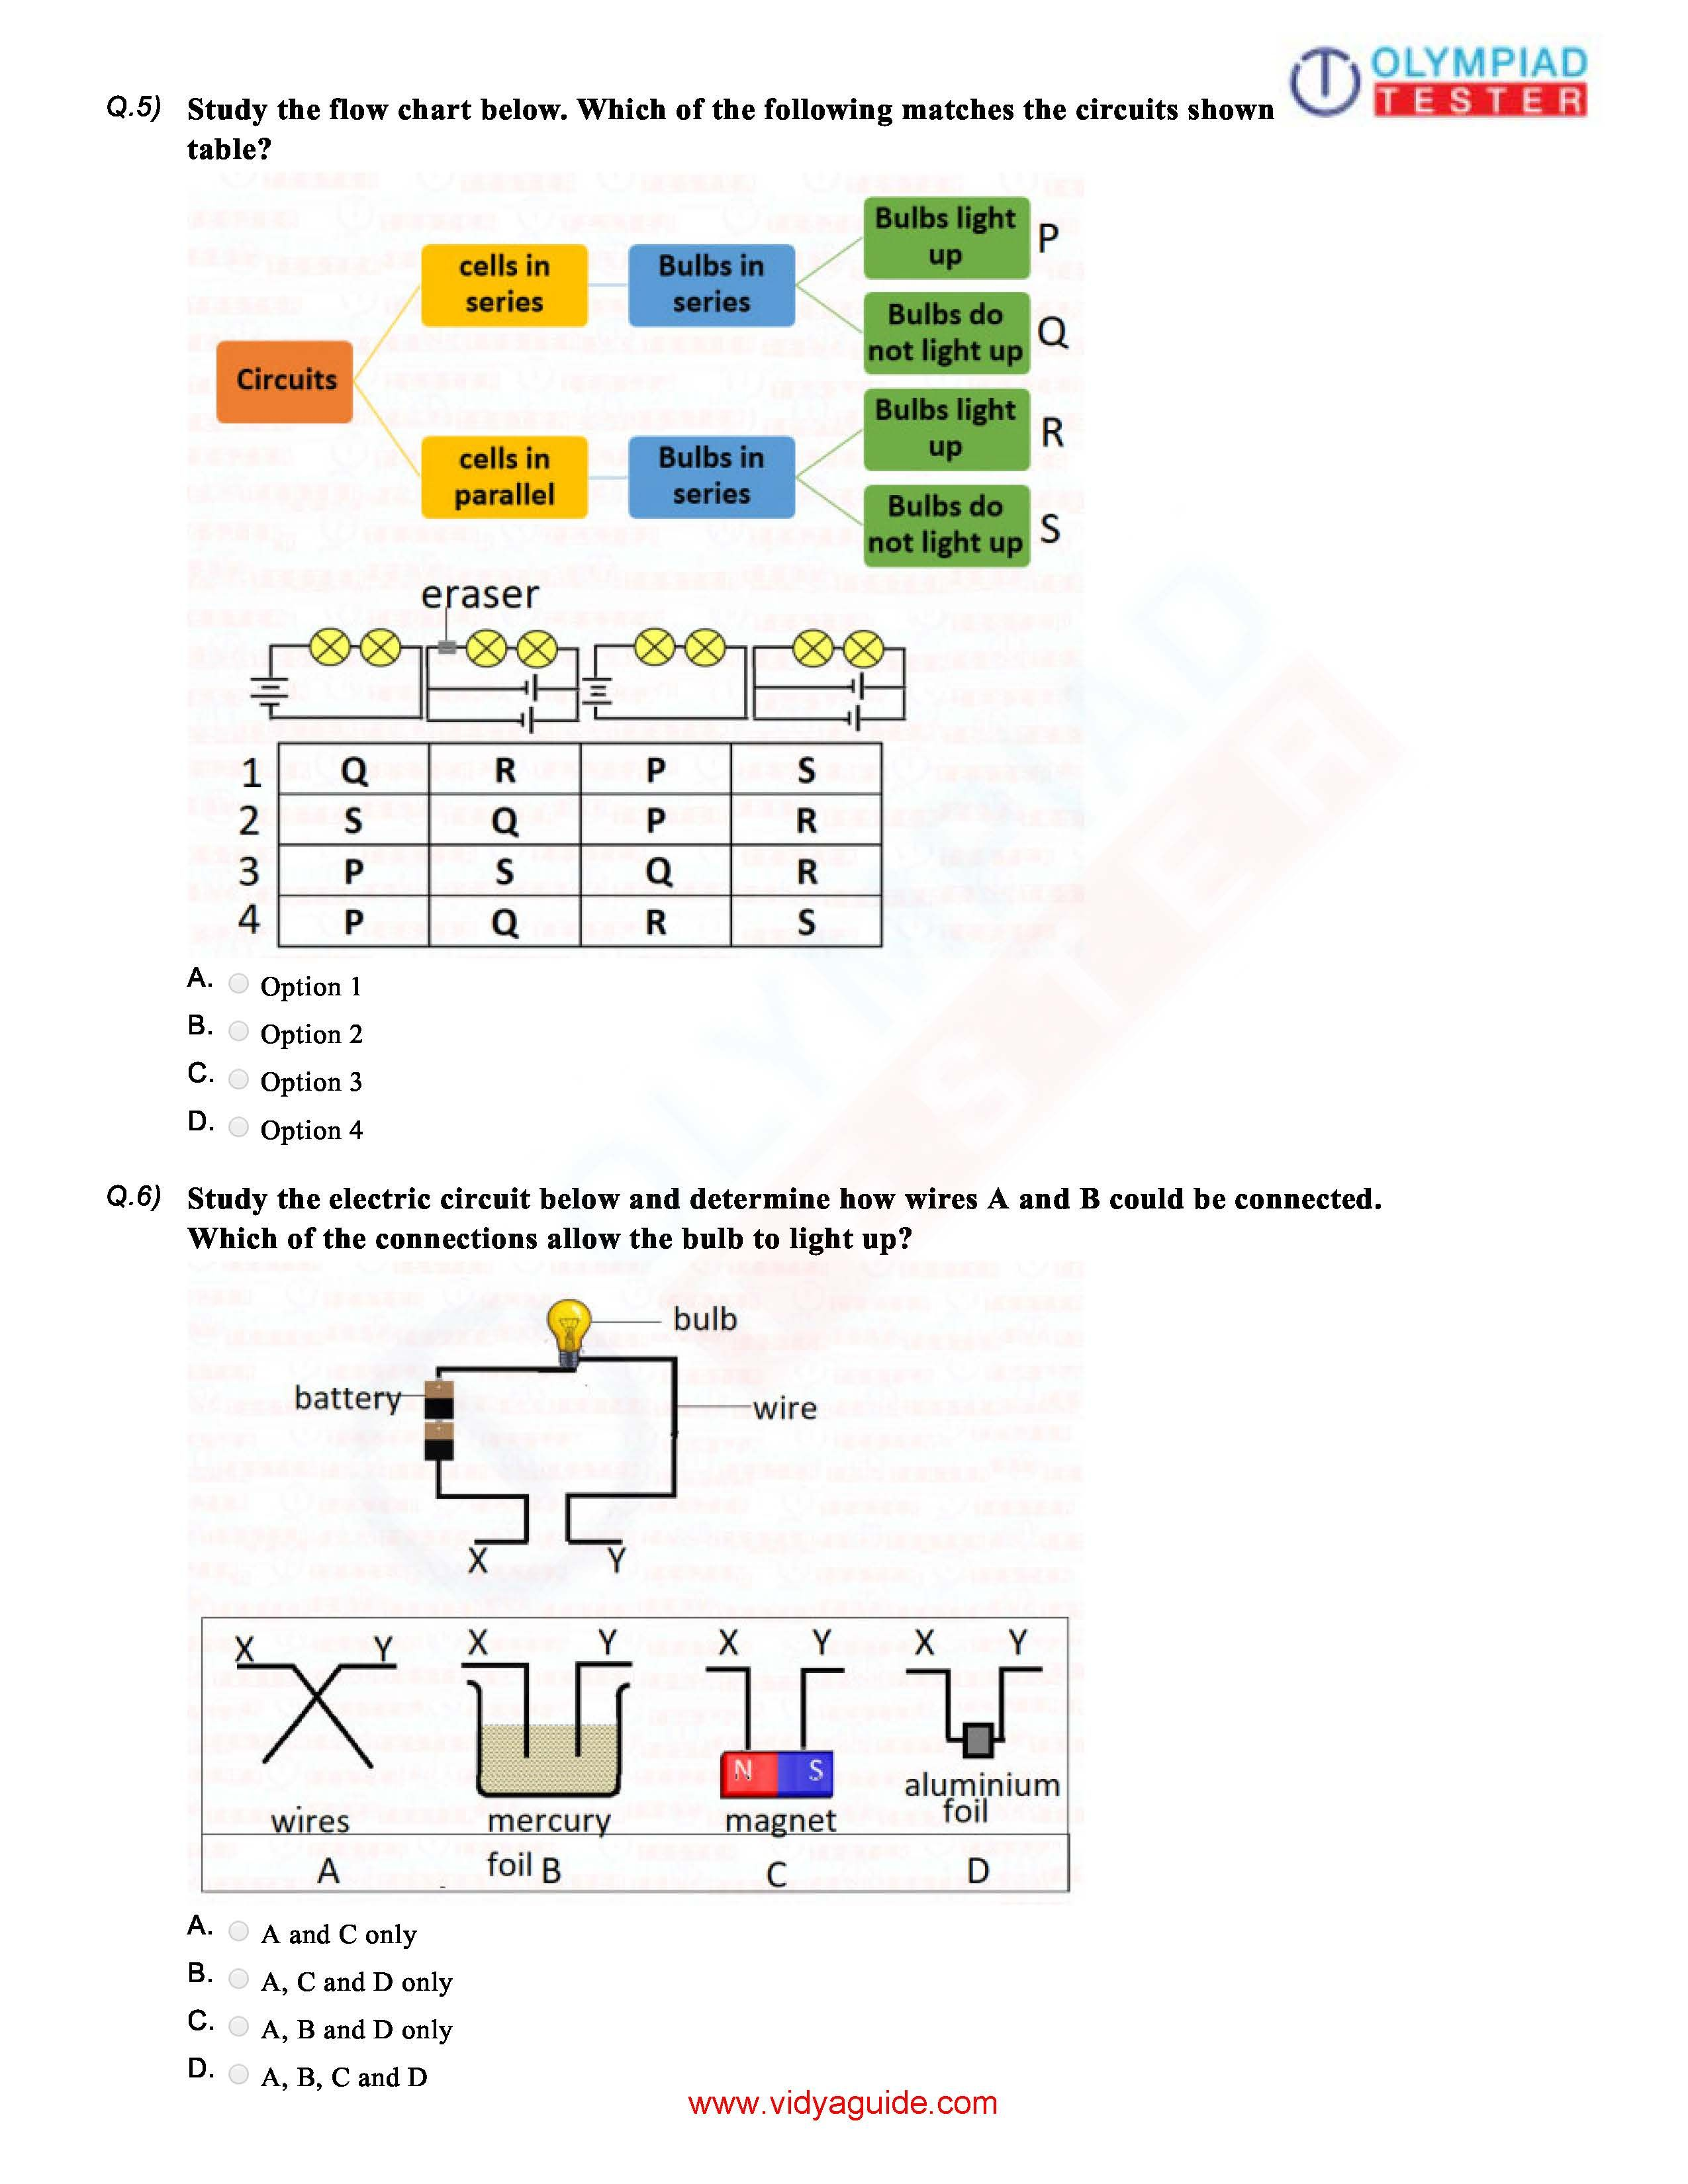 Class 6 Science Electricity Circuits Worksheet 02 Angle Relationships Worksheet Relationship Worksheets Phonics Worksheets Free [ 3300 x 2550 Pixel ]